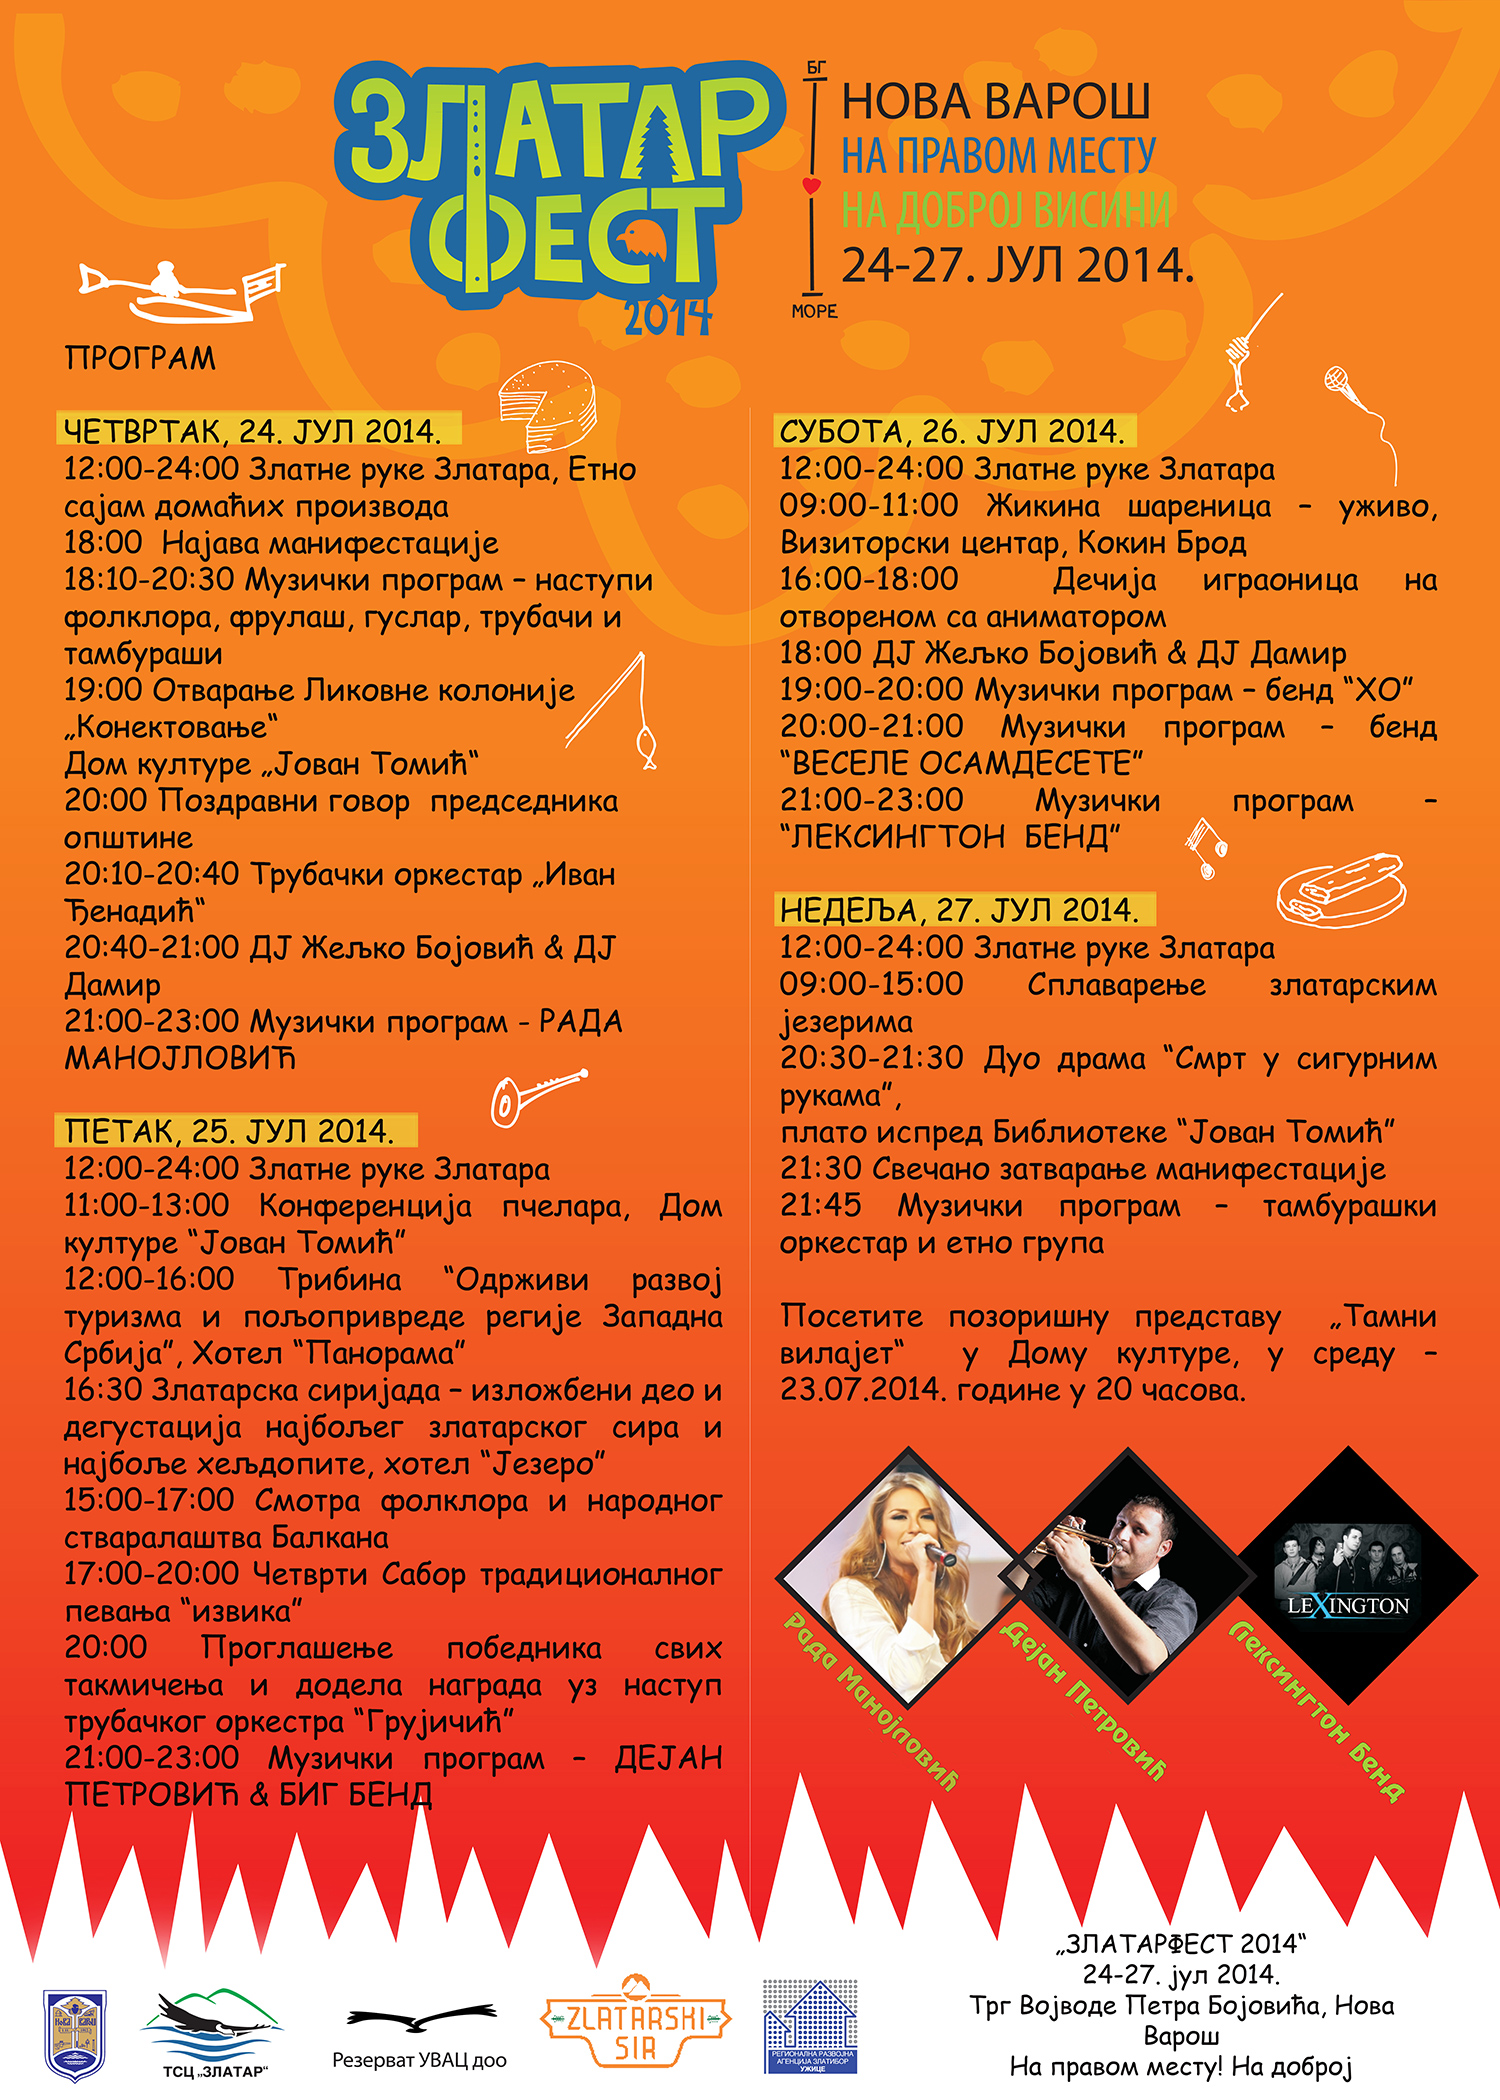 zlatarfest 2014 program